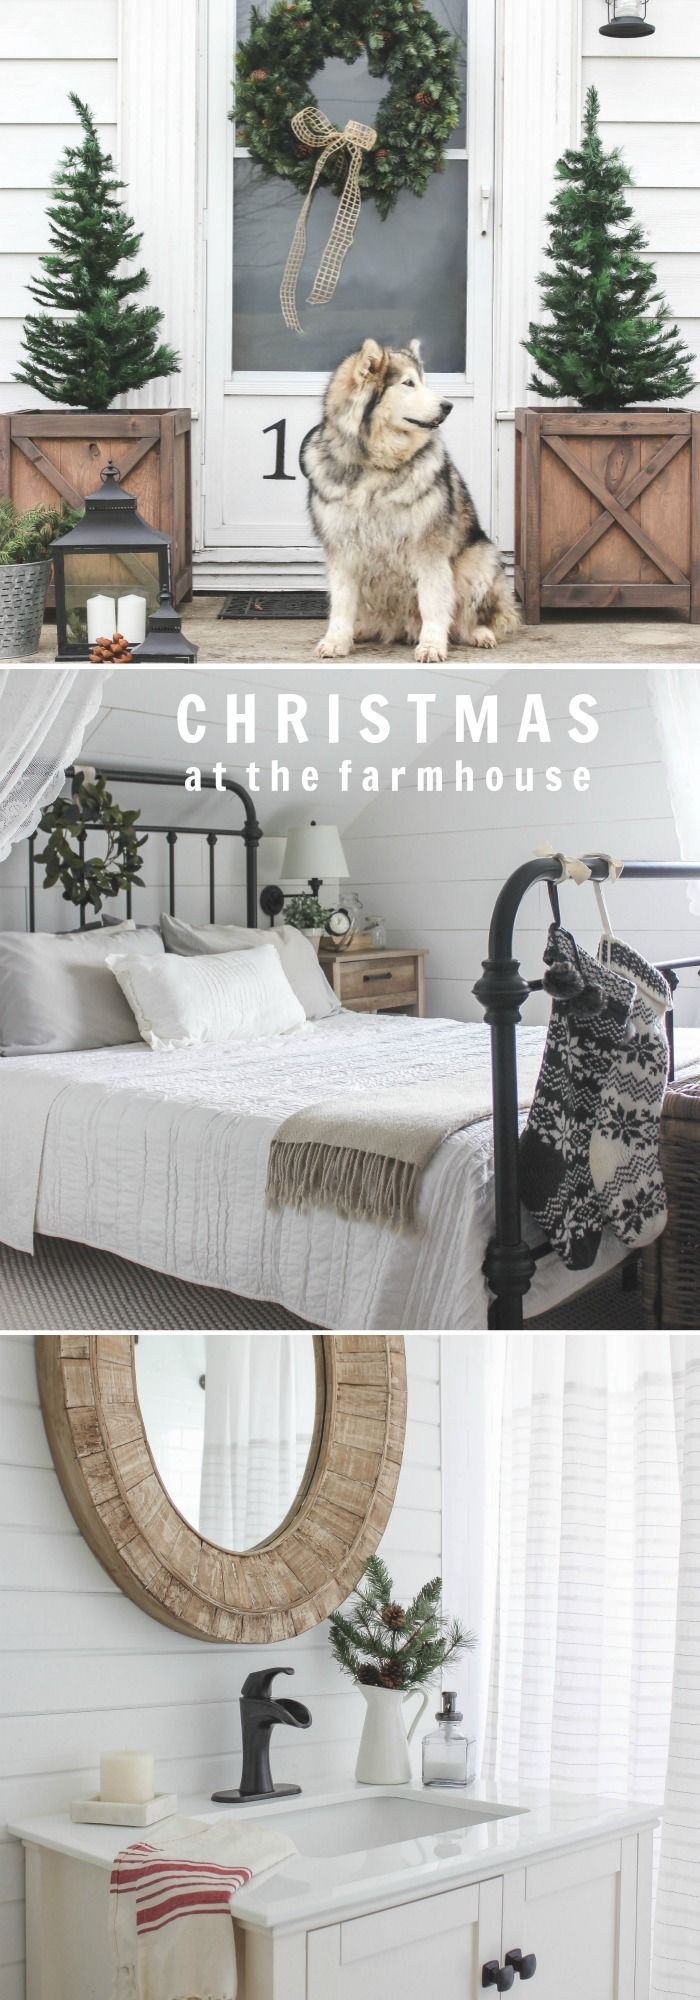 1724 best Christmas images on Pinterest   Xmas, Christmas trees and ...